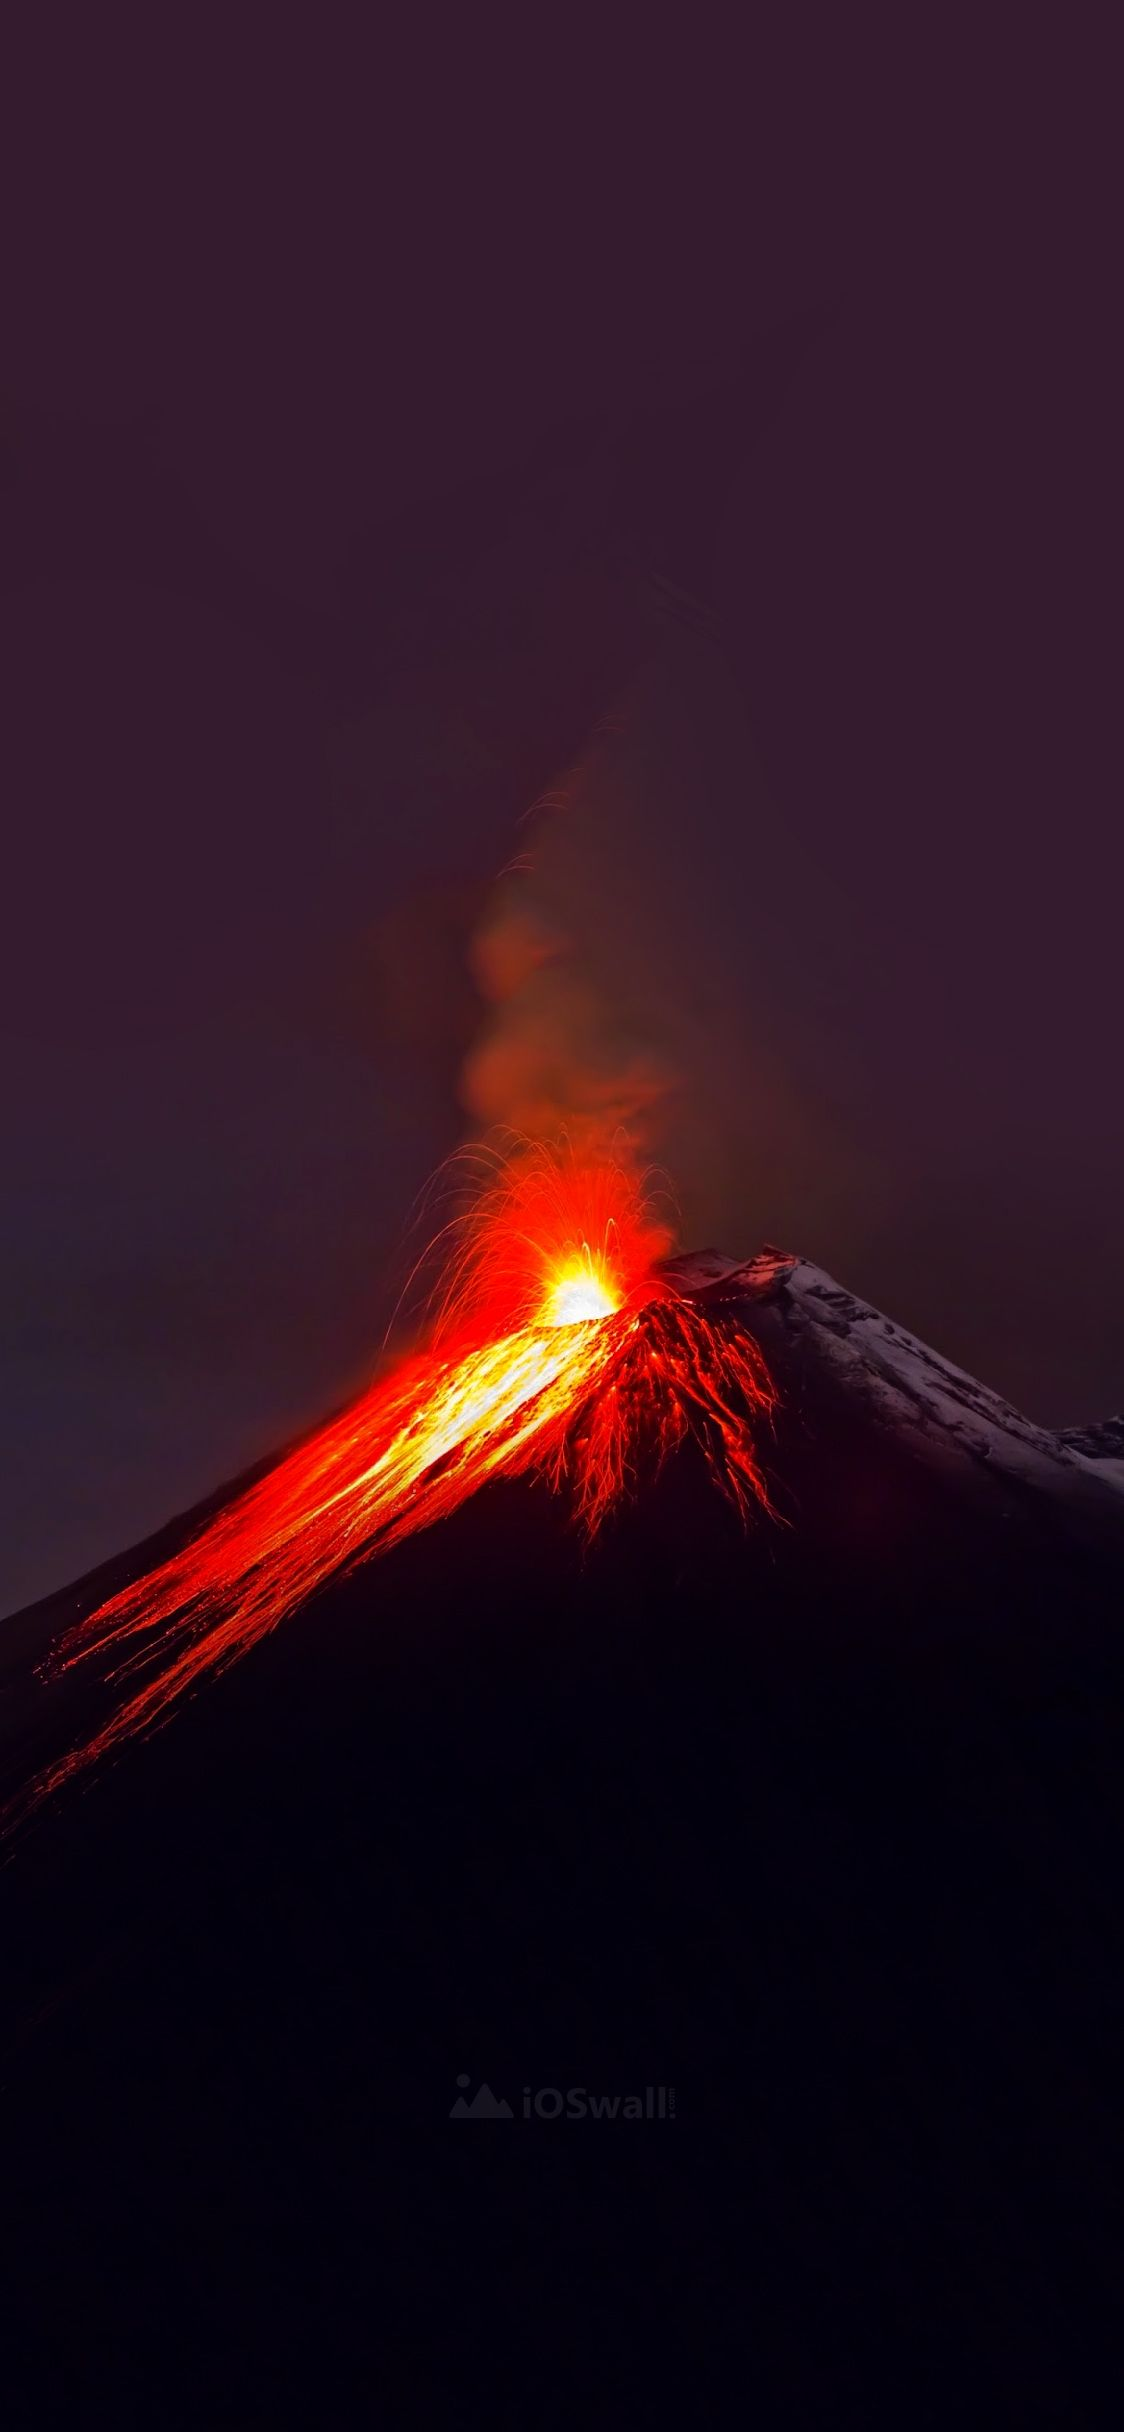 Best Volcano Wallpaper For Iphone X Ioswall Volcano Wallpaper Iphone Wallpaper Mountains Volcano